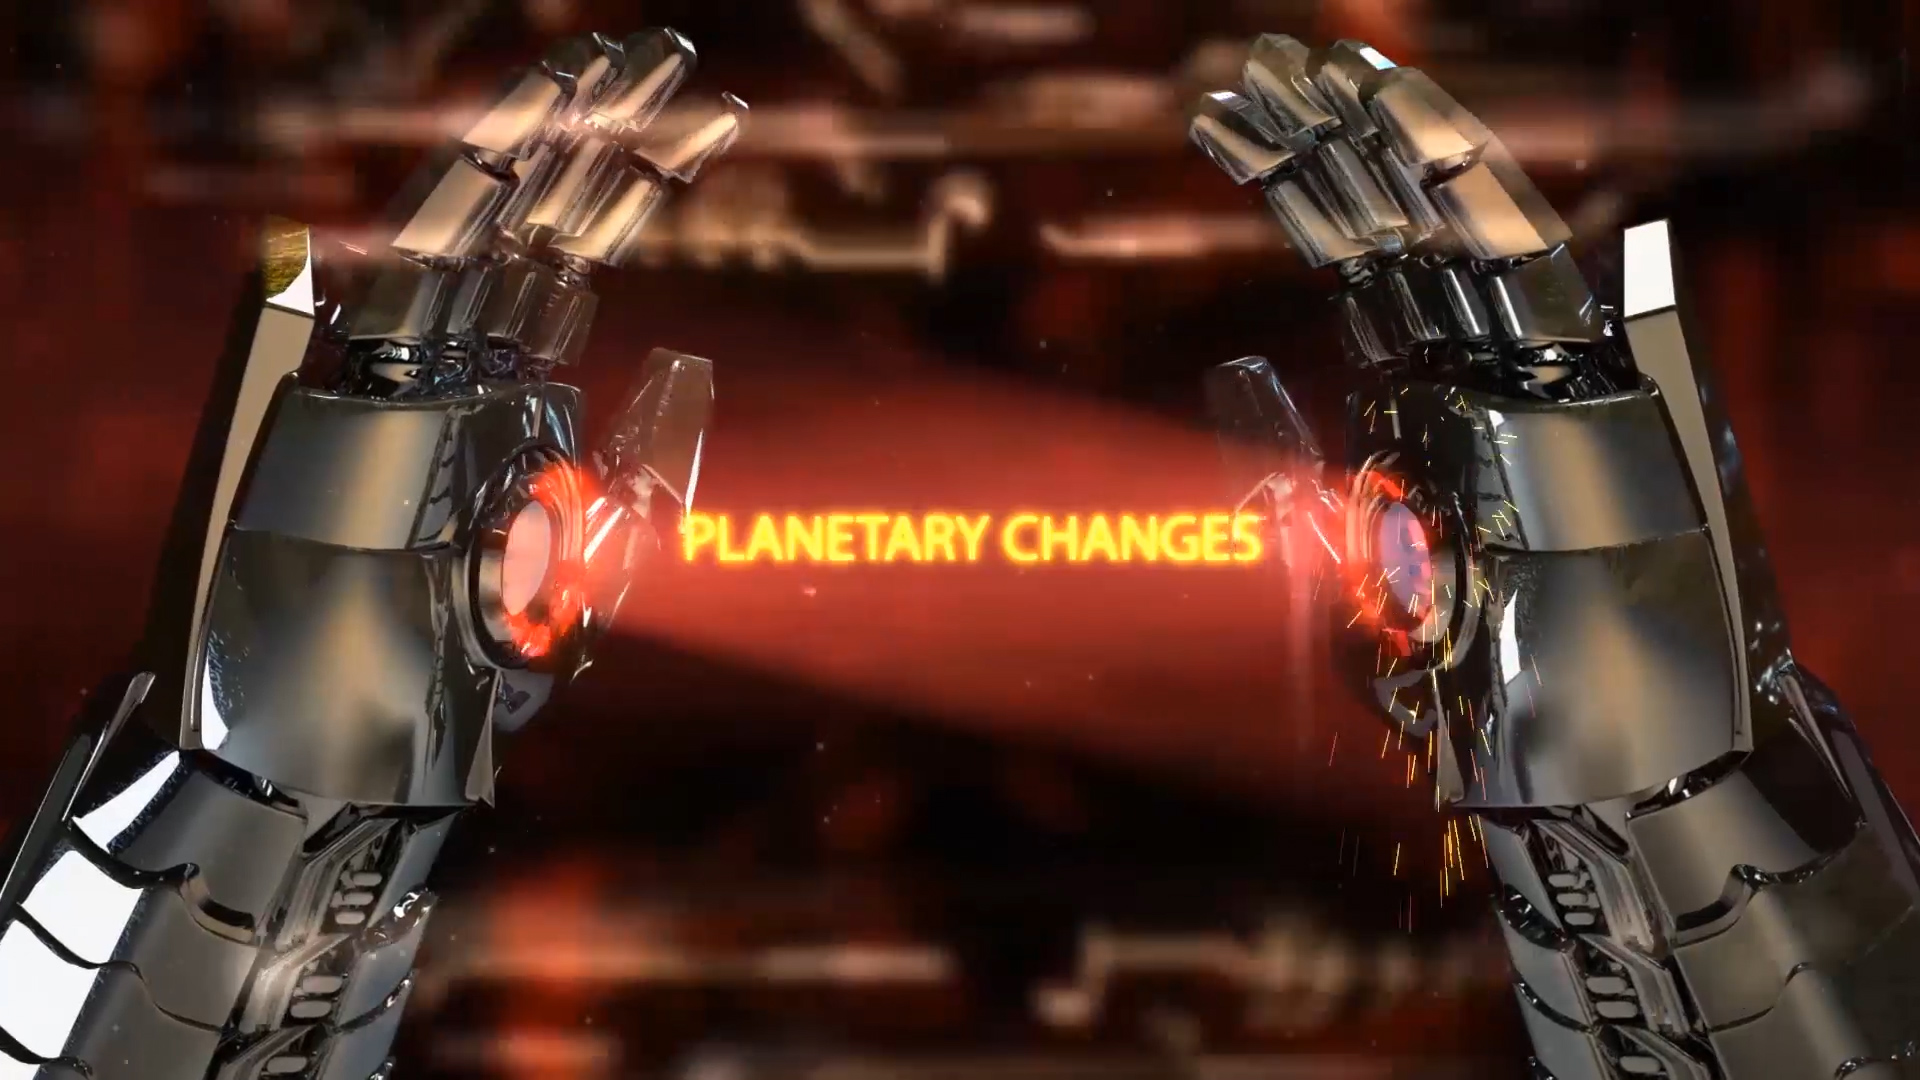 Planetary Changes 31